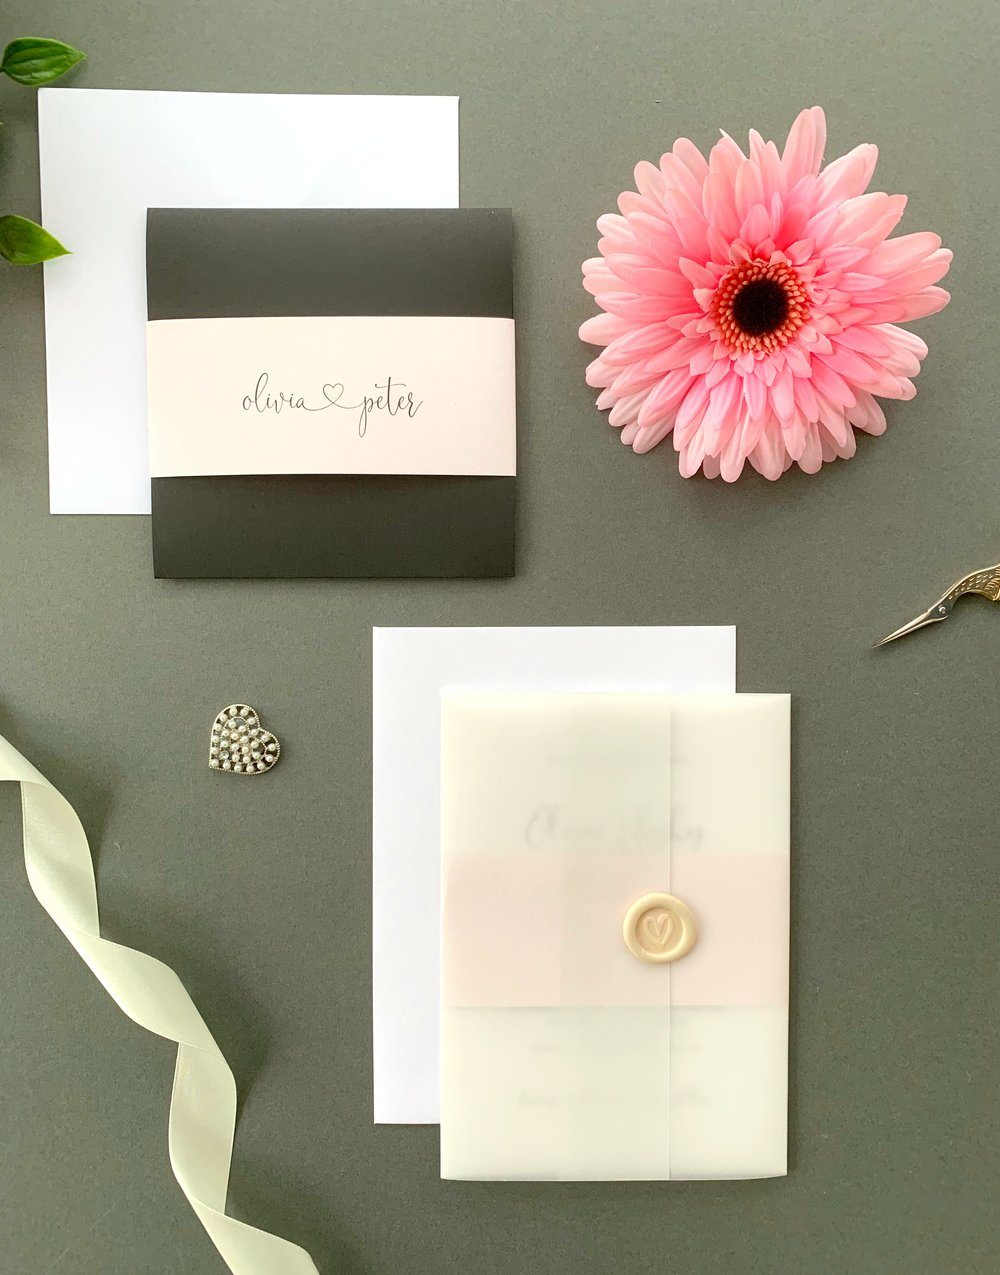 Finchley Pocketfold Suite with Paper Belly Band, Invitation Suite with Paper Belly Band, Vellum Jacket and Pearl Ivory Wax Seal